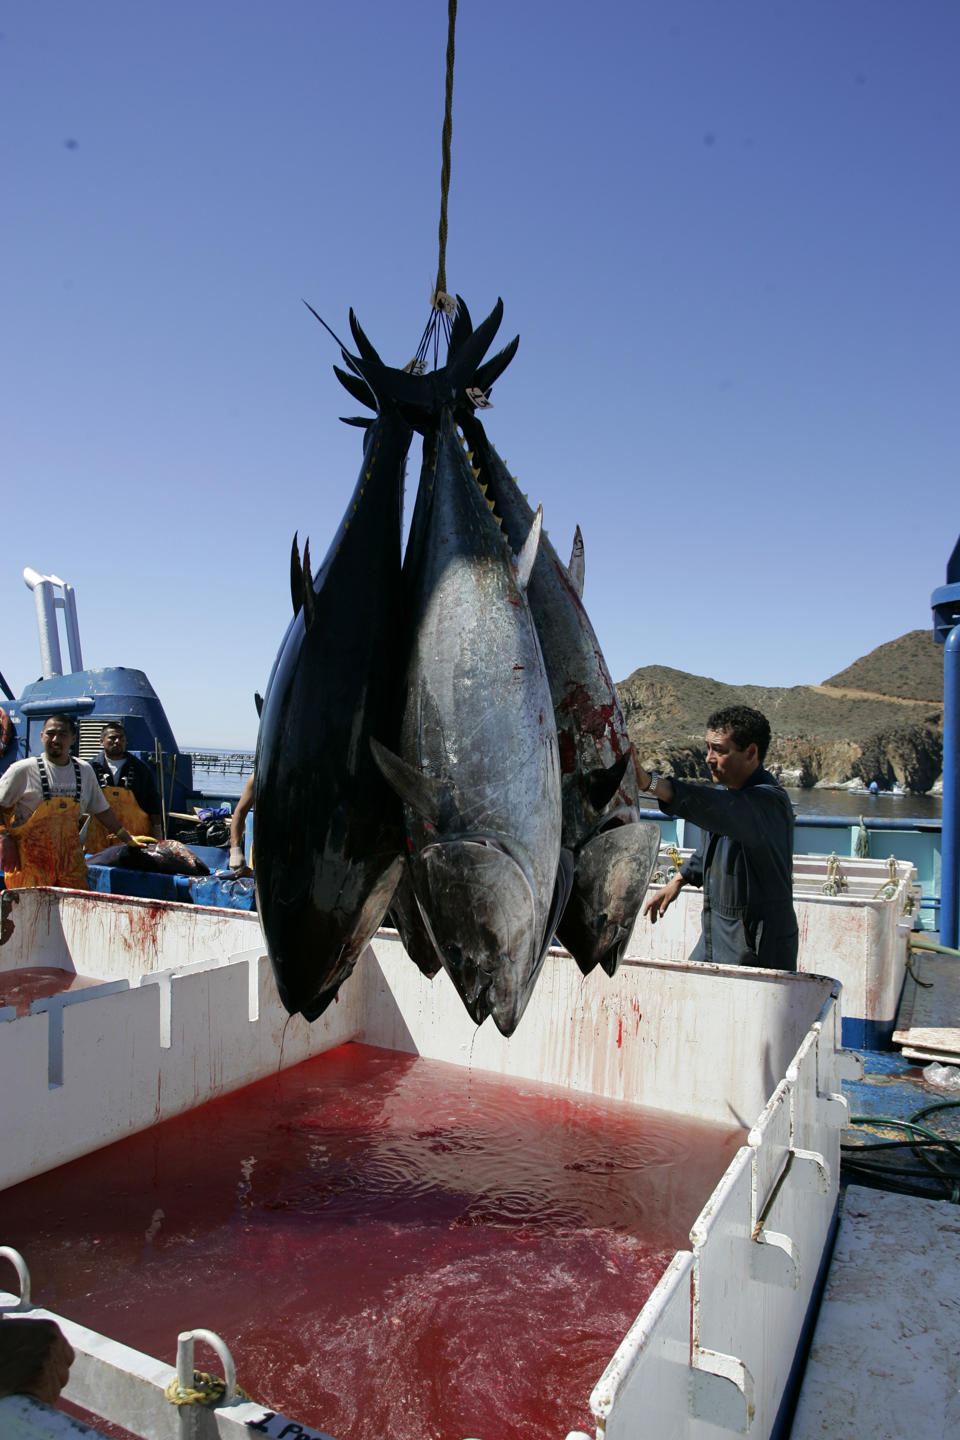 Radioactive bluefin tuna.  Contaminated by radiation from Fukushima diaster.  Radio activity continues to travel through the Pacific ocean.